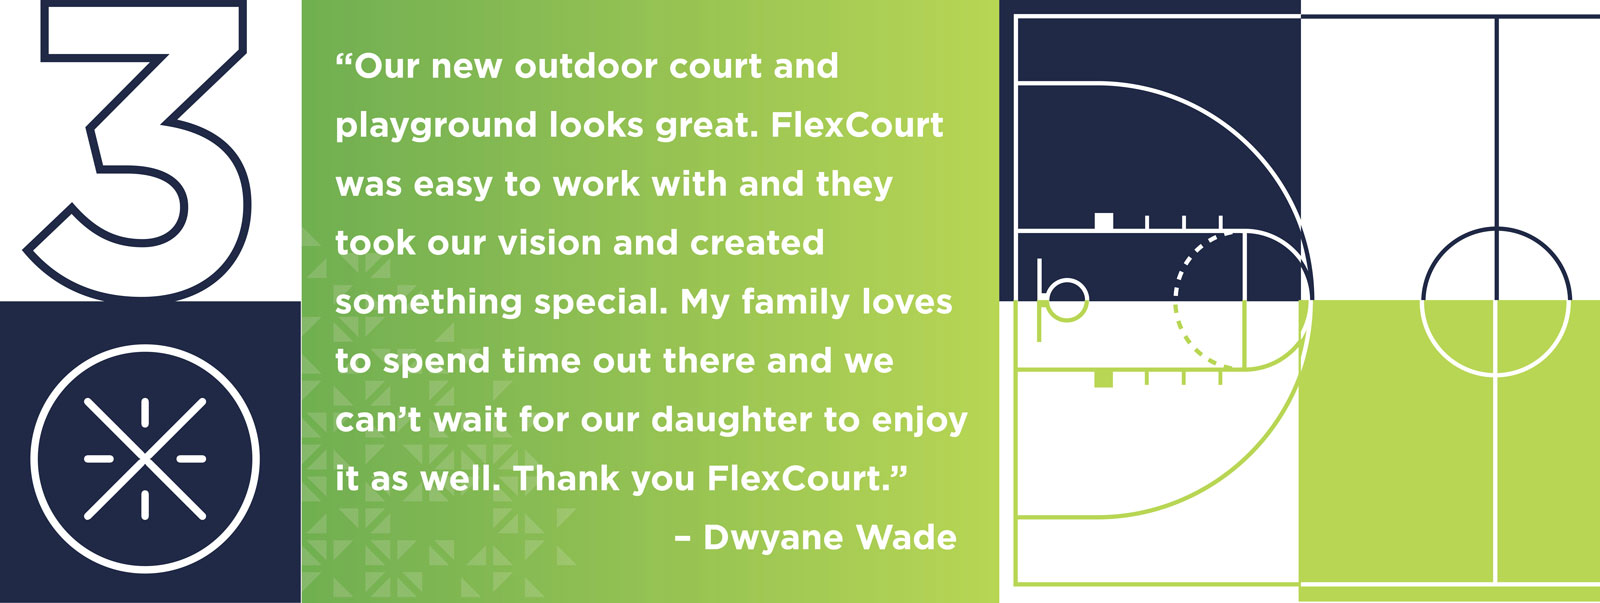 """Our new outdoor court and playground looks great. FlexCourt was easy to work with and they took our vision and created something special. My family loves to spend time out there and we can't wait for our daughter to enjoy it as well. Thank you FlexCourt."" - Dwyane Wade"